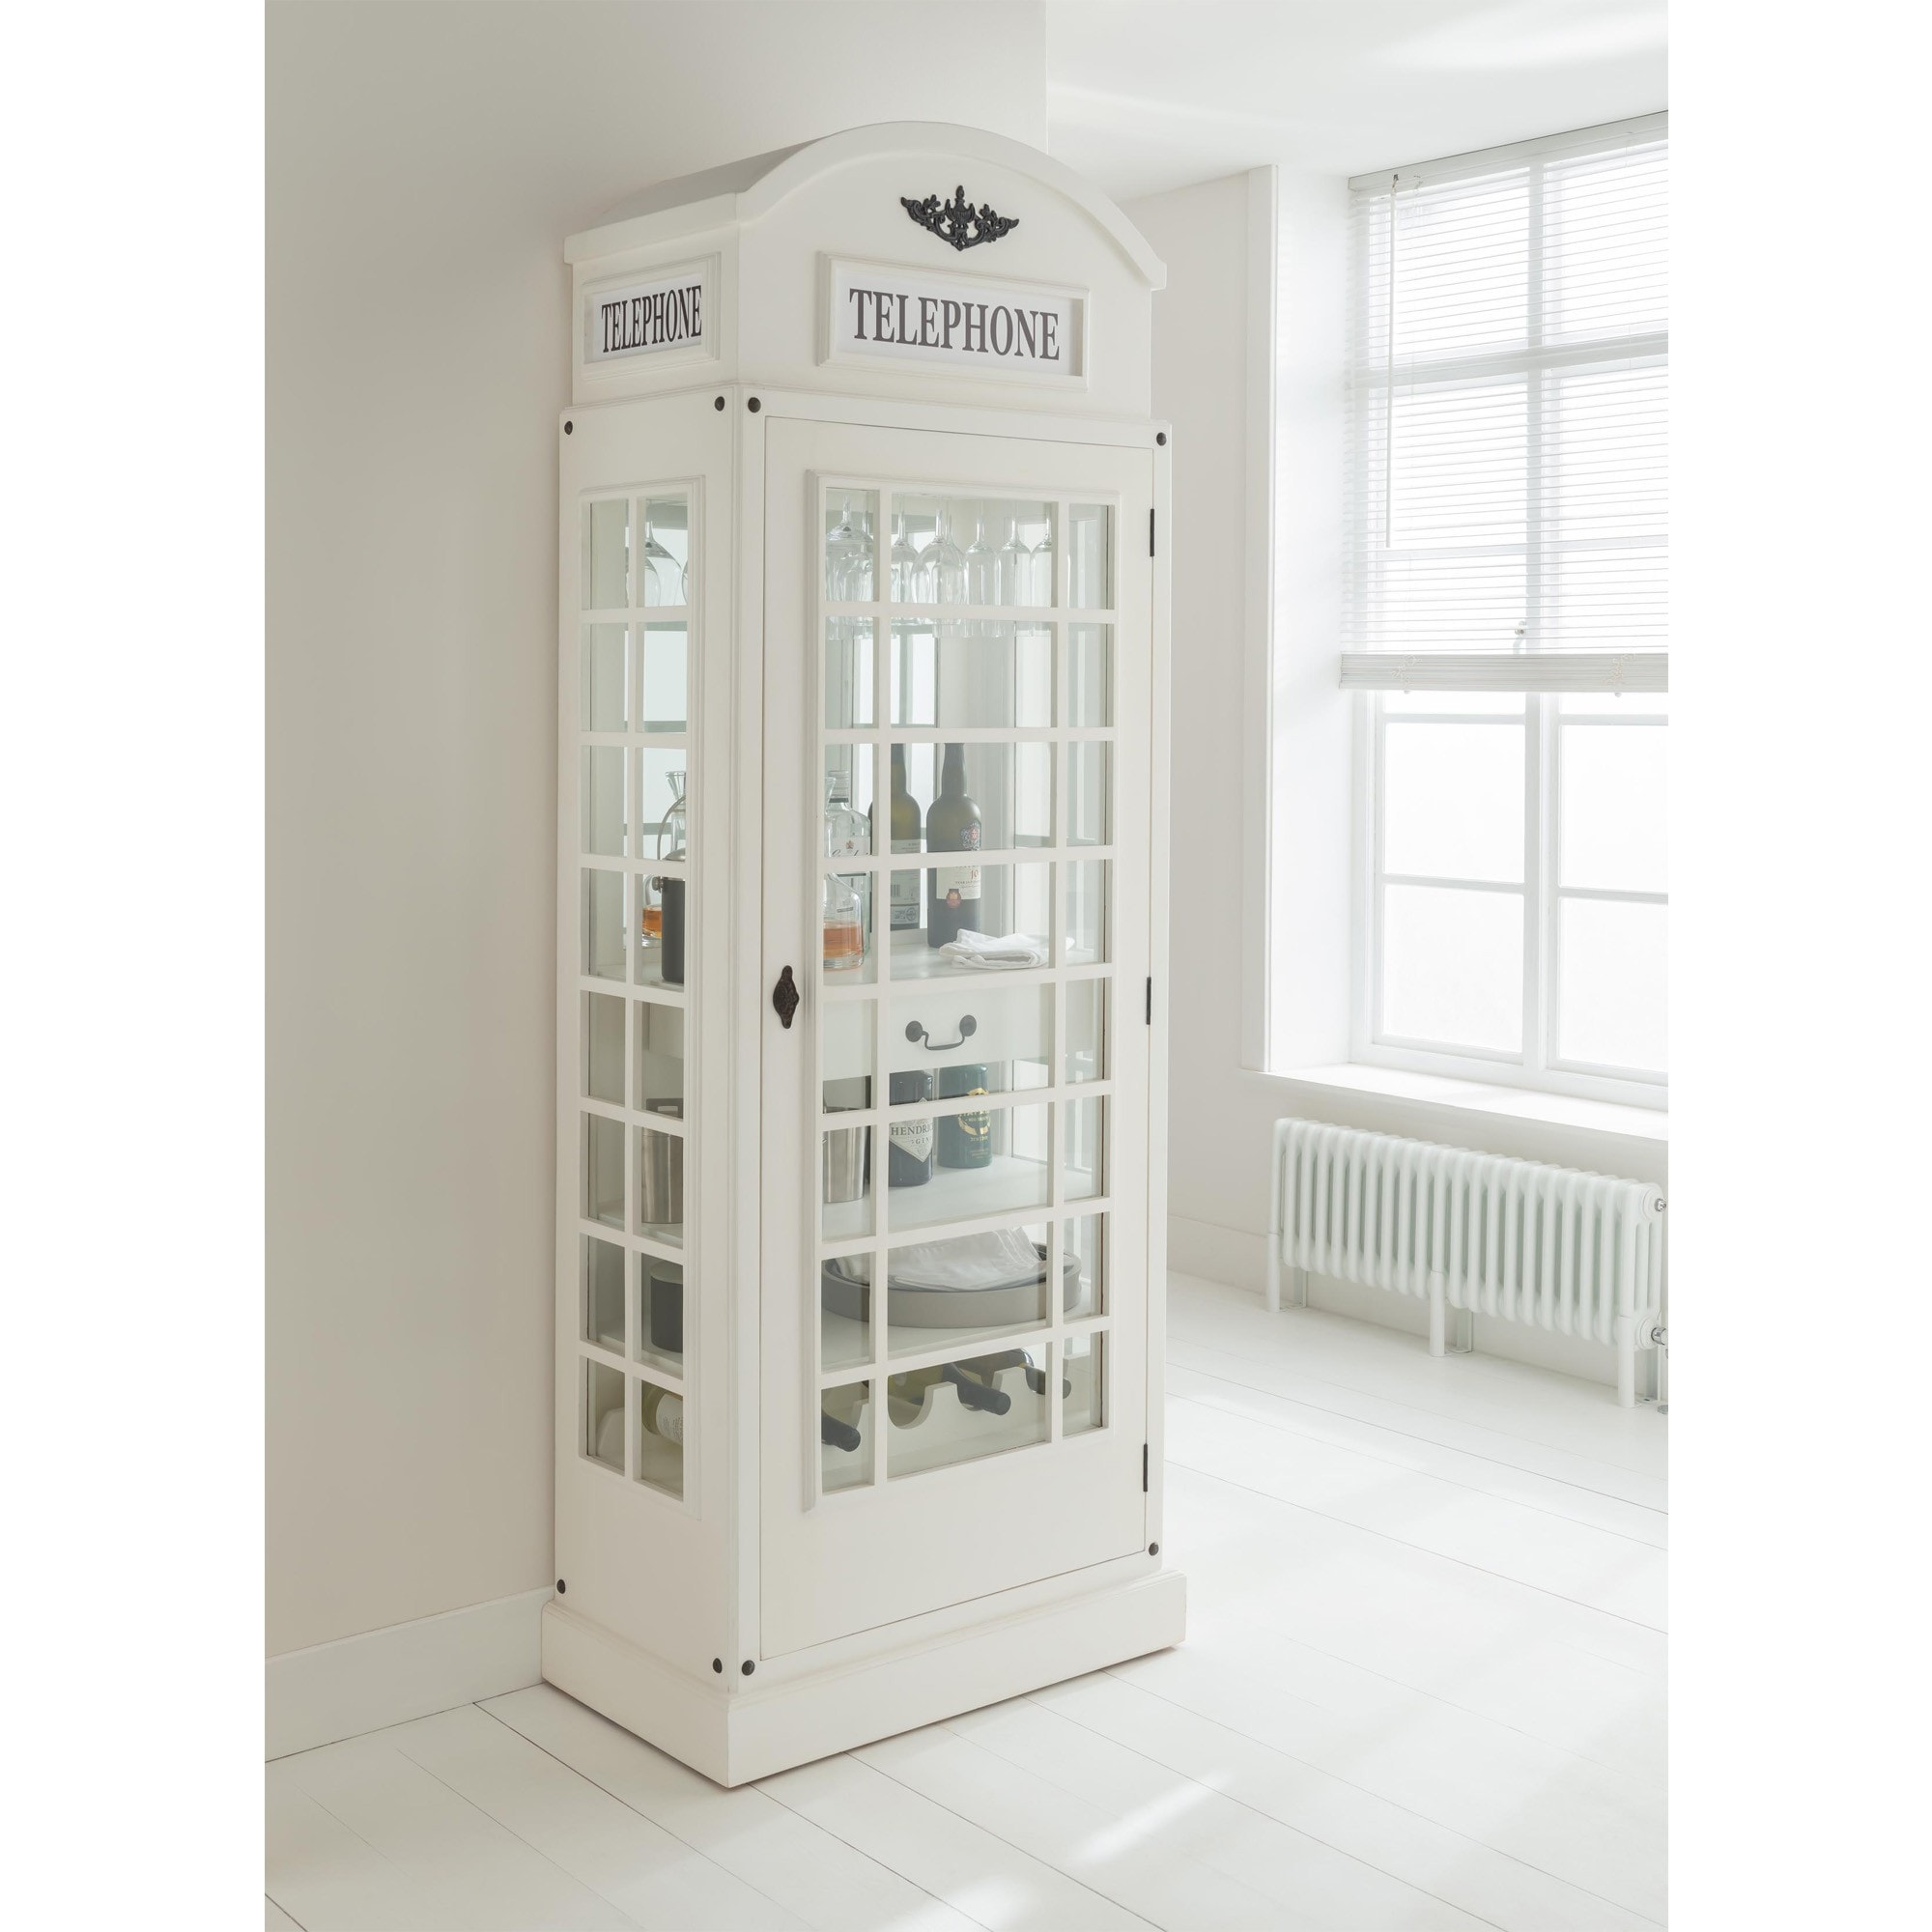 Picture of: White Drinks Cabinet In A Telephone Box Style Display Cabinet